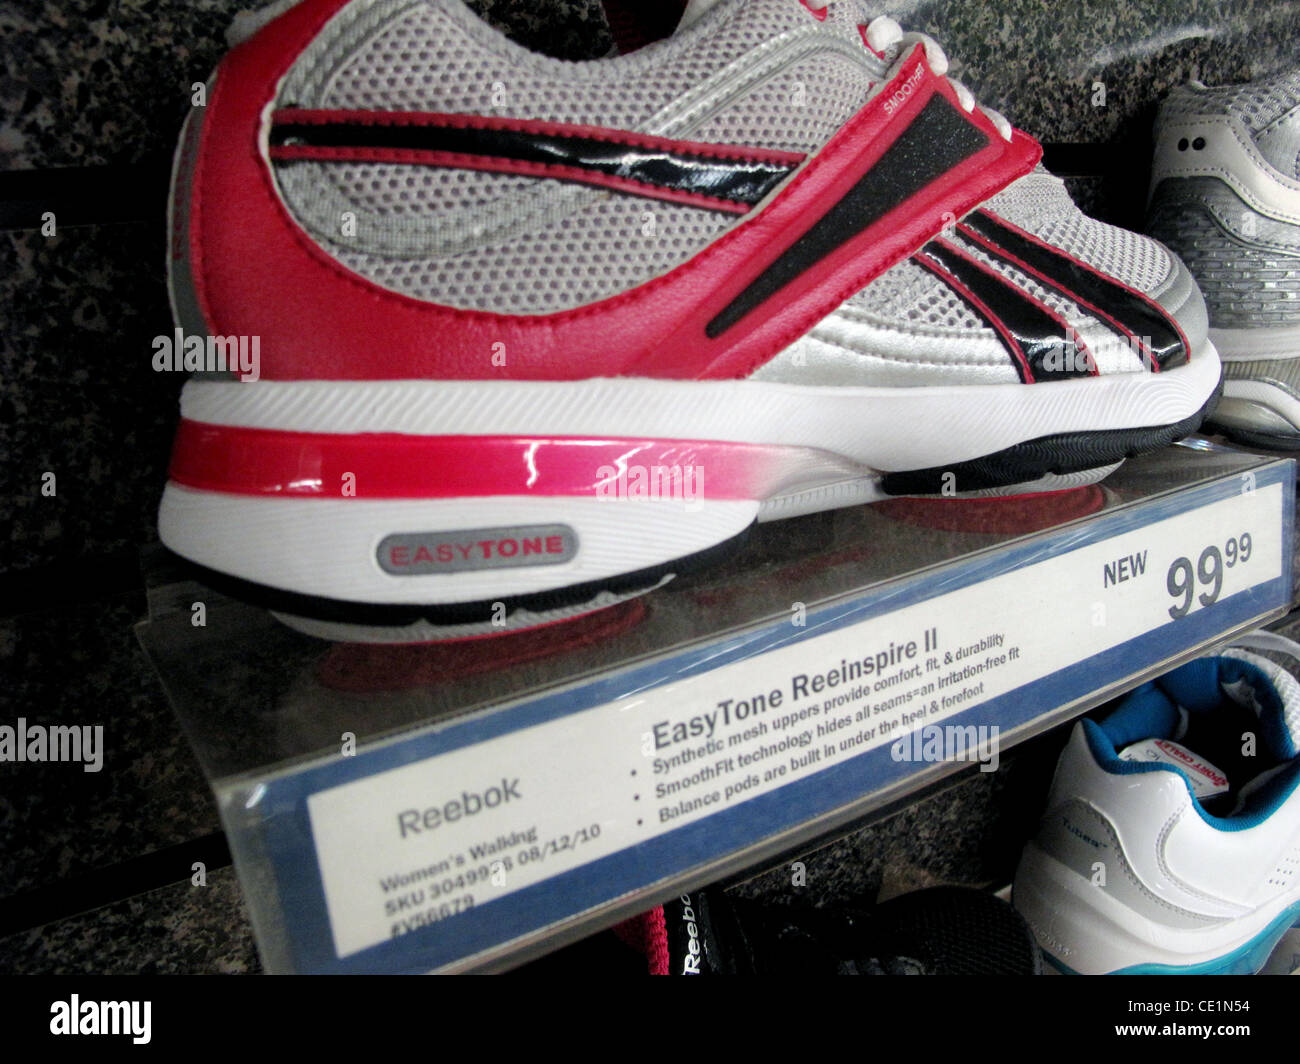 fd1743edf0f0 Reebok Shoes Stock Photos   Reebok Shoes Stock Images - Page 2 - Alamy